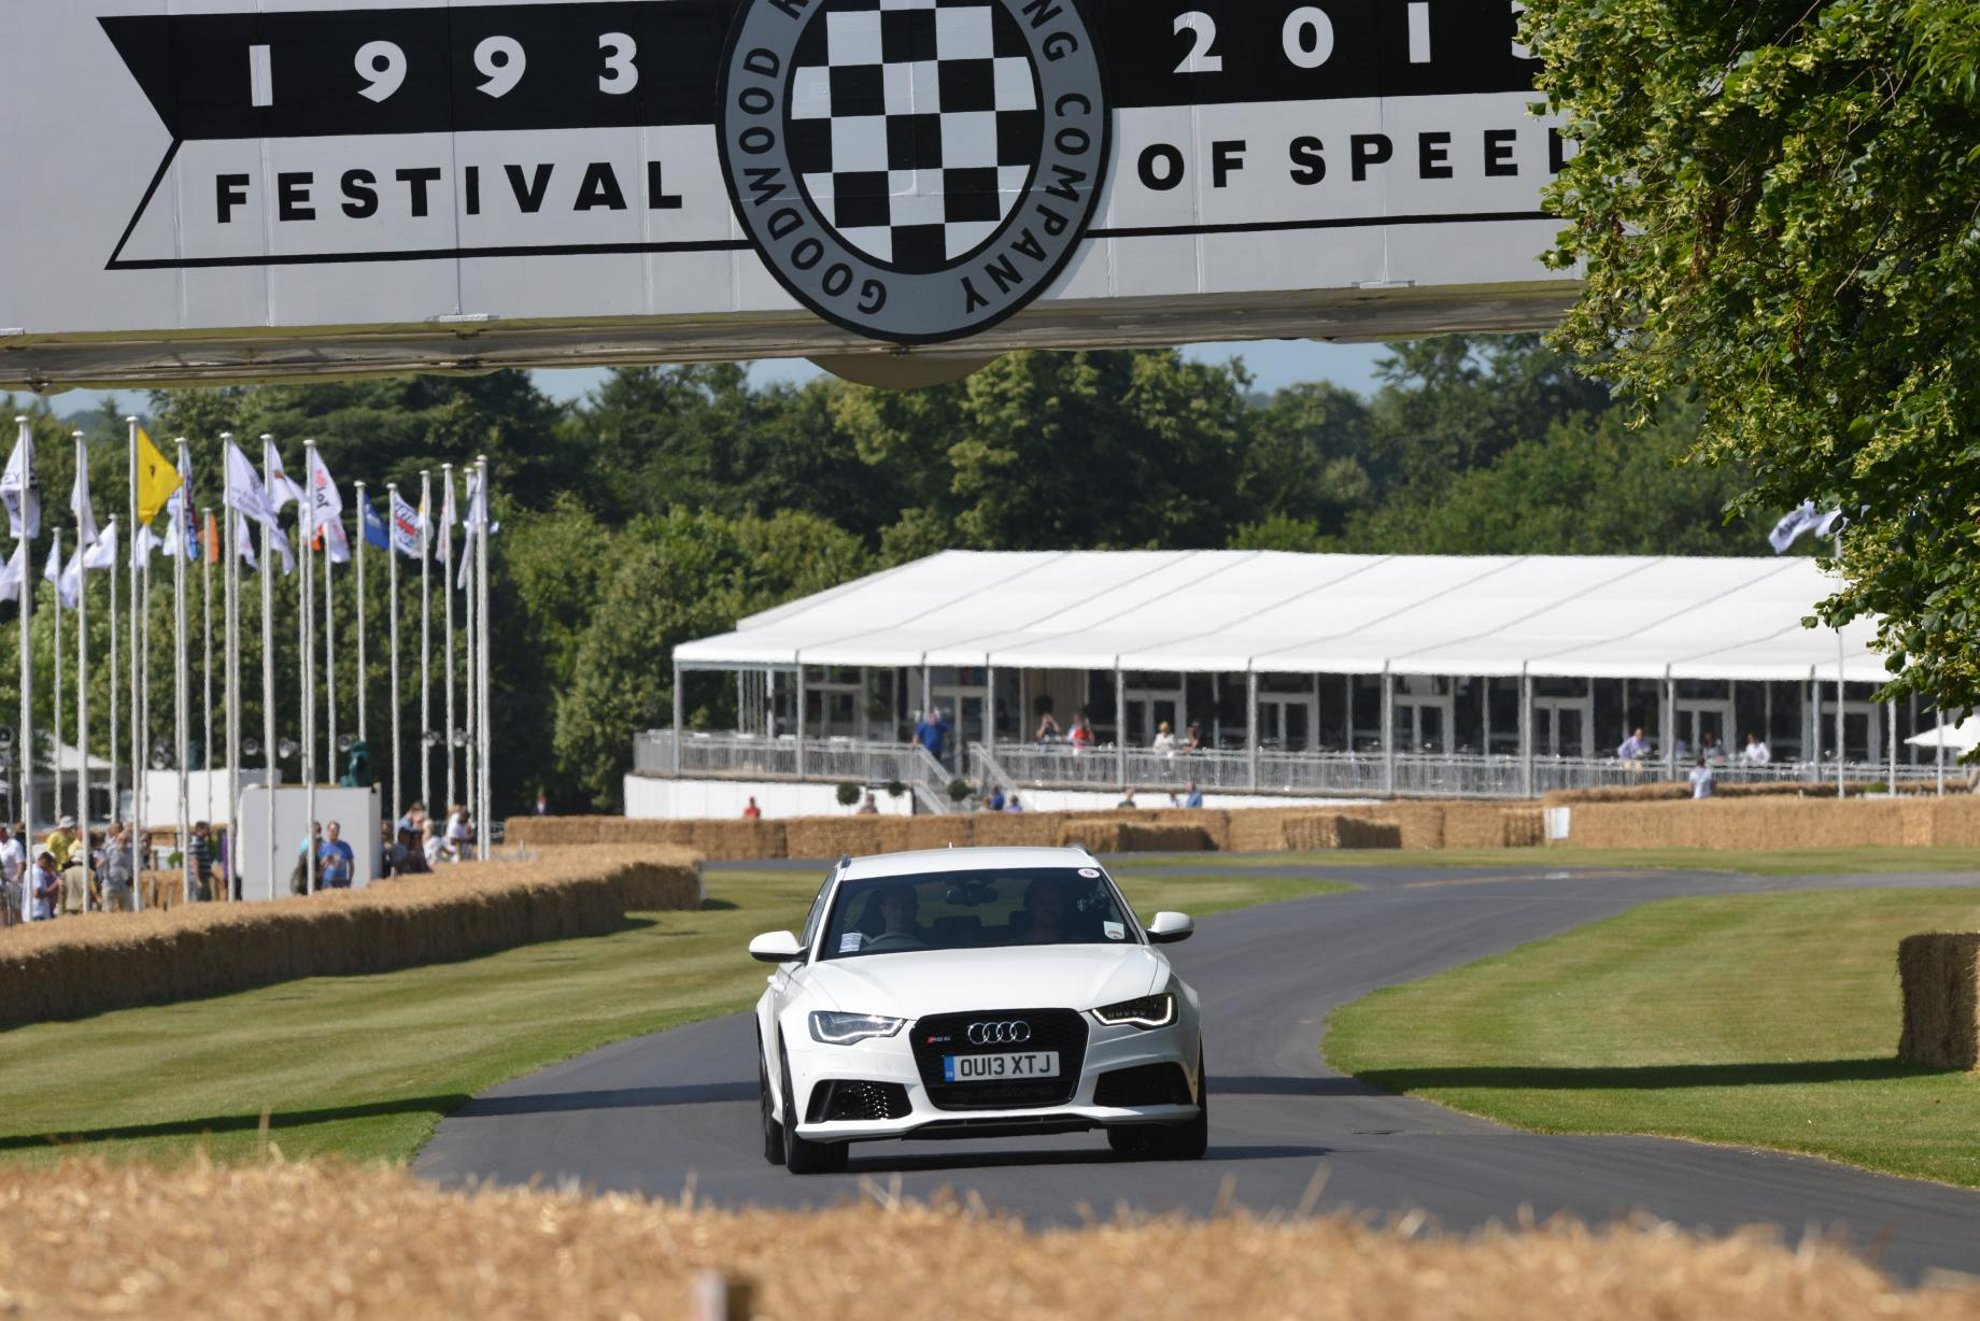 Audi at the Goodwood Festival of Speed 2013